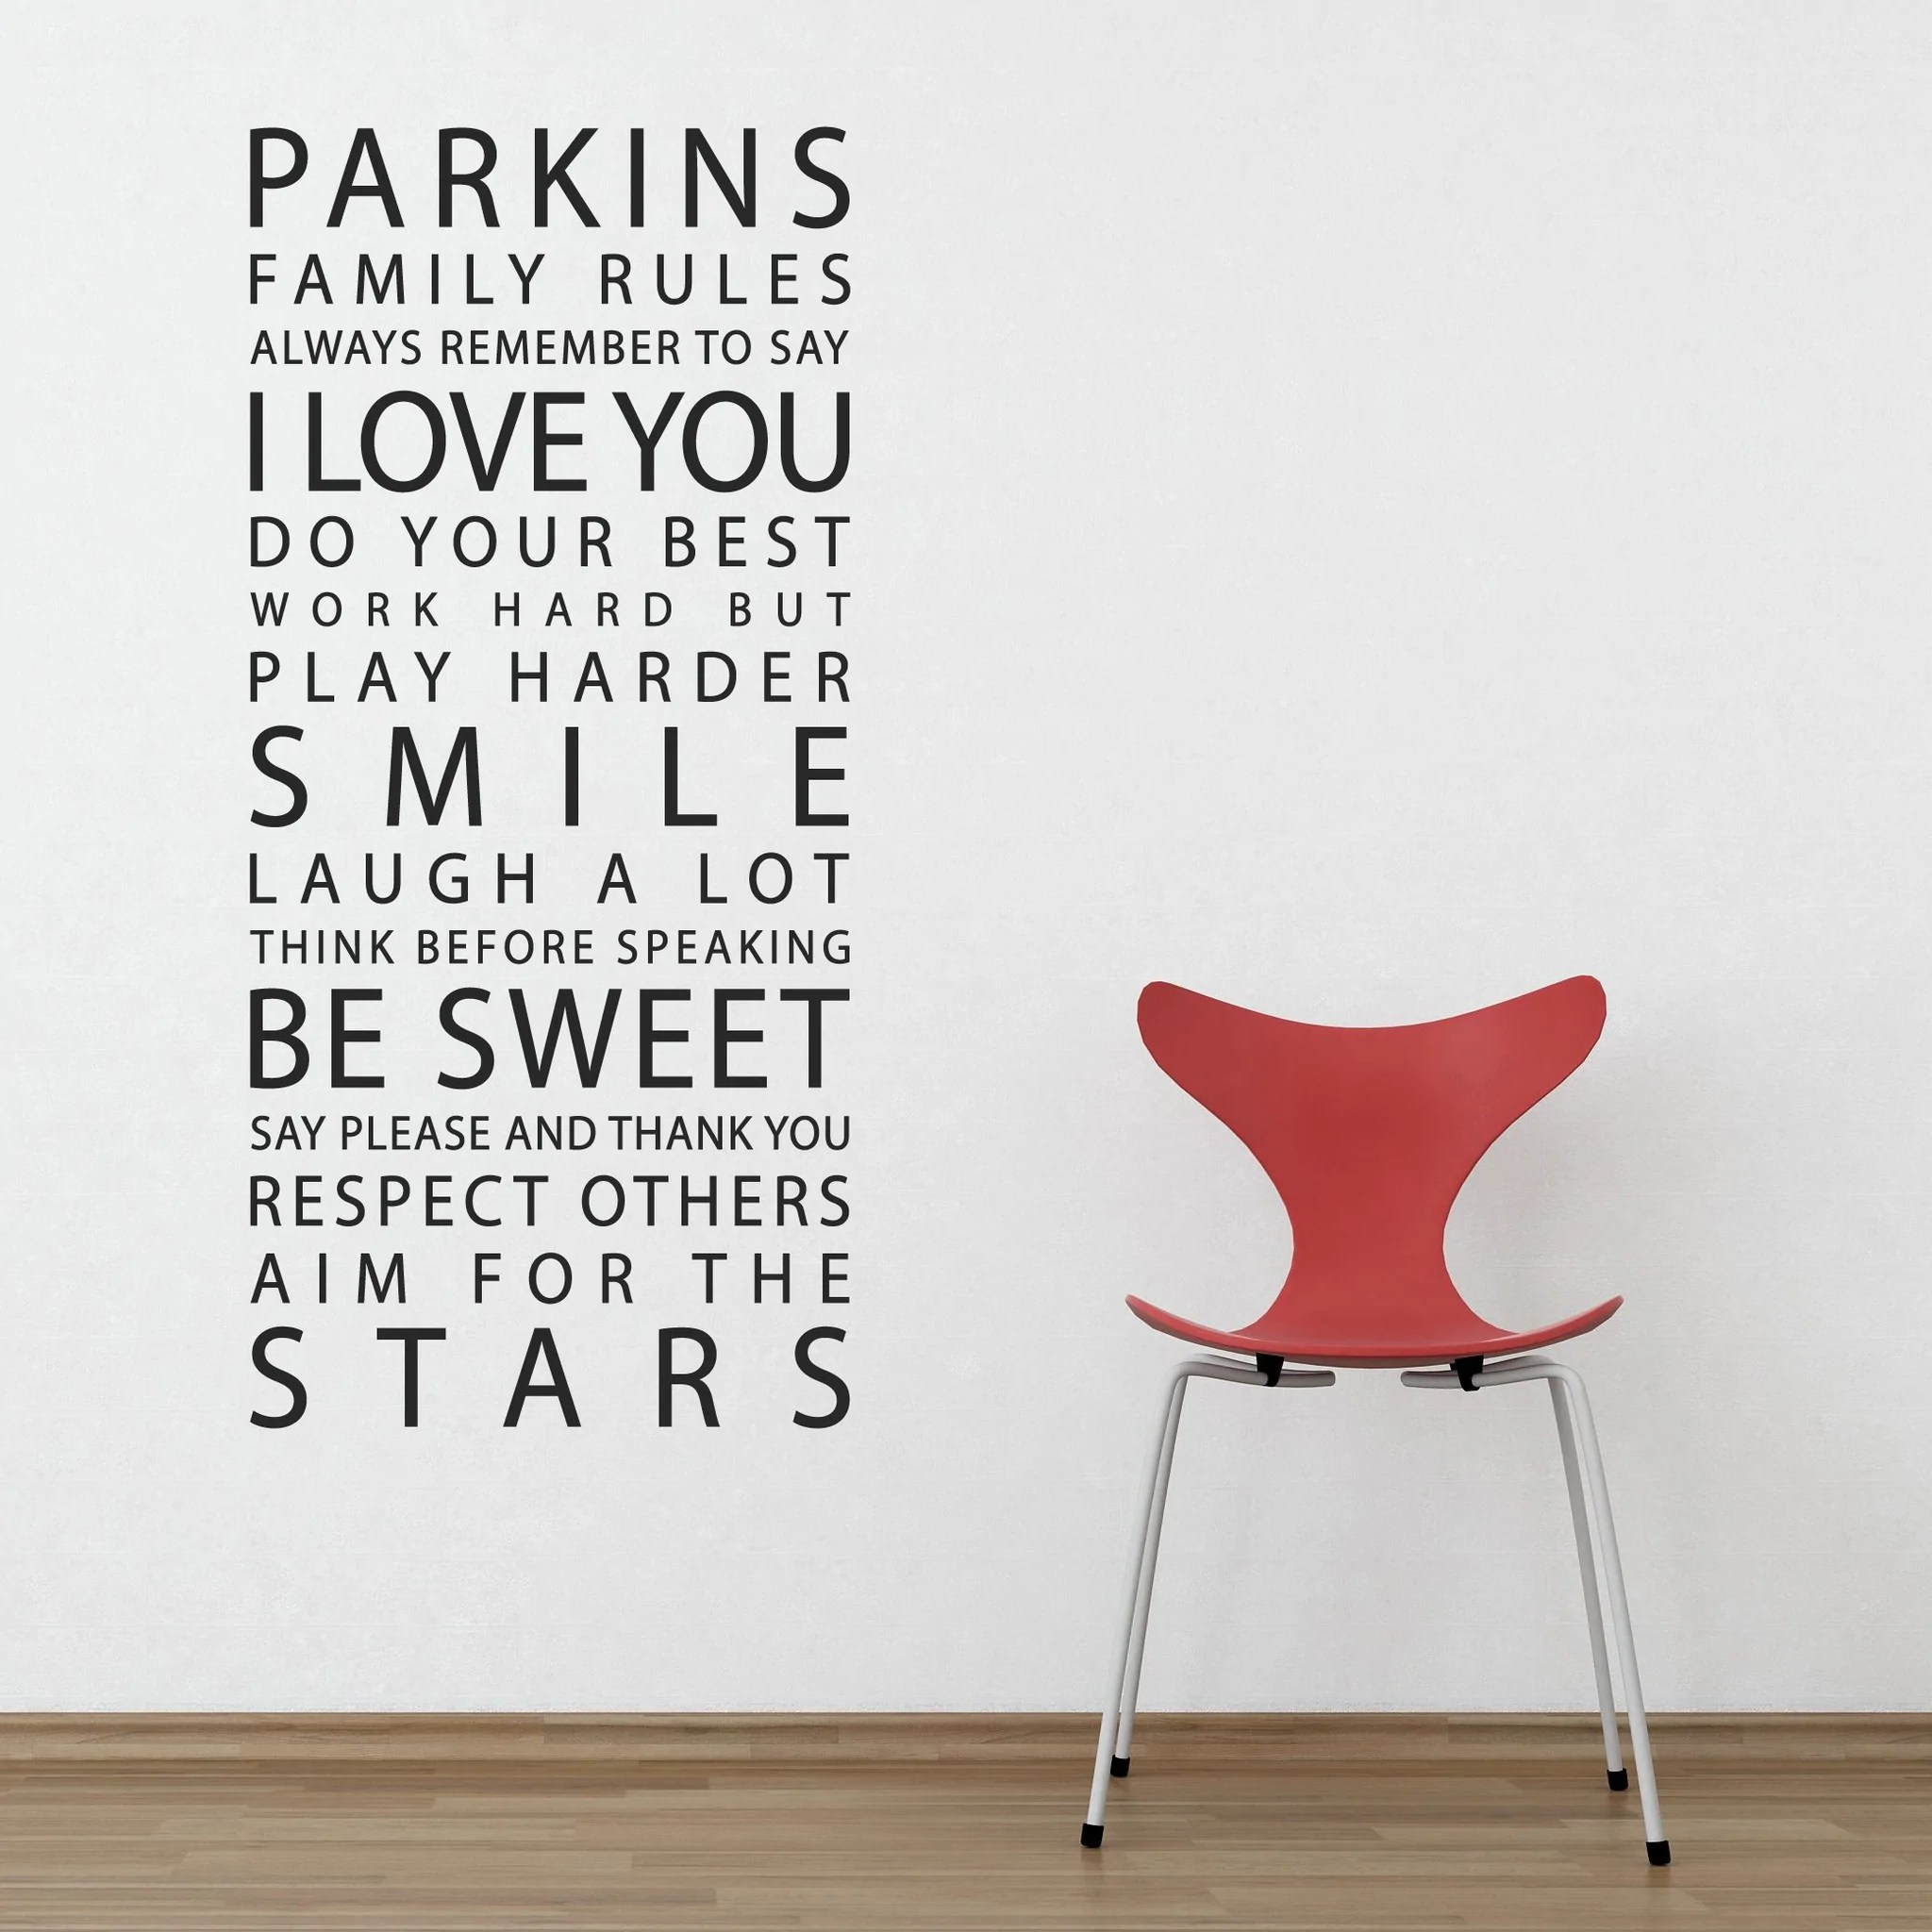 Personalised Family Rules Wall Stickers  Parkins Interiors